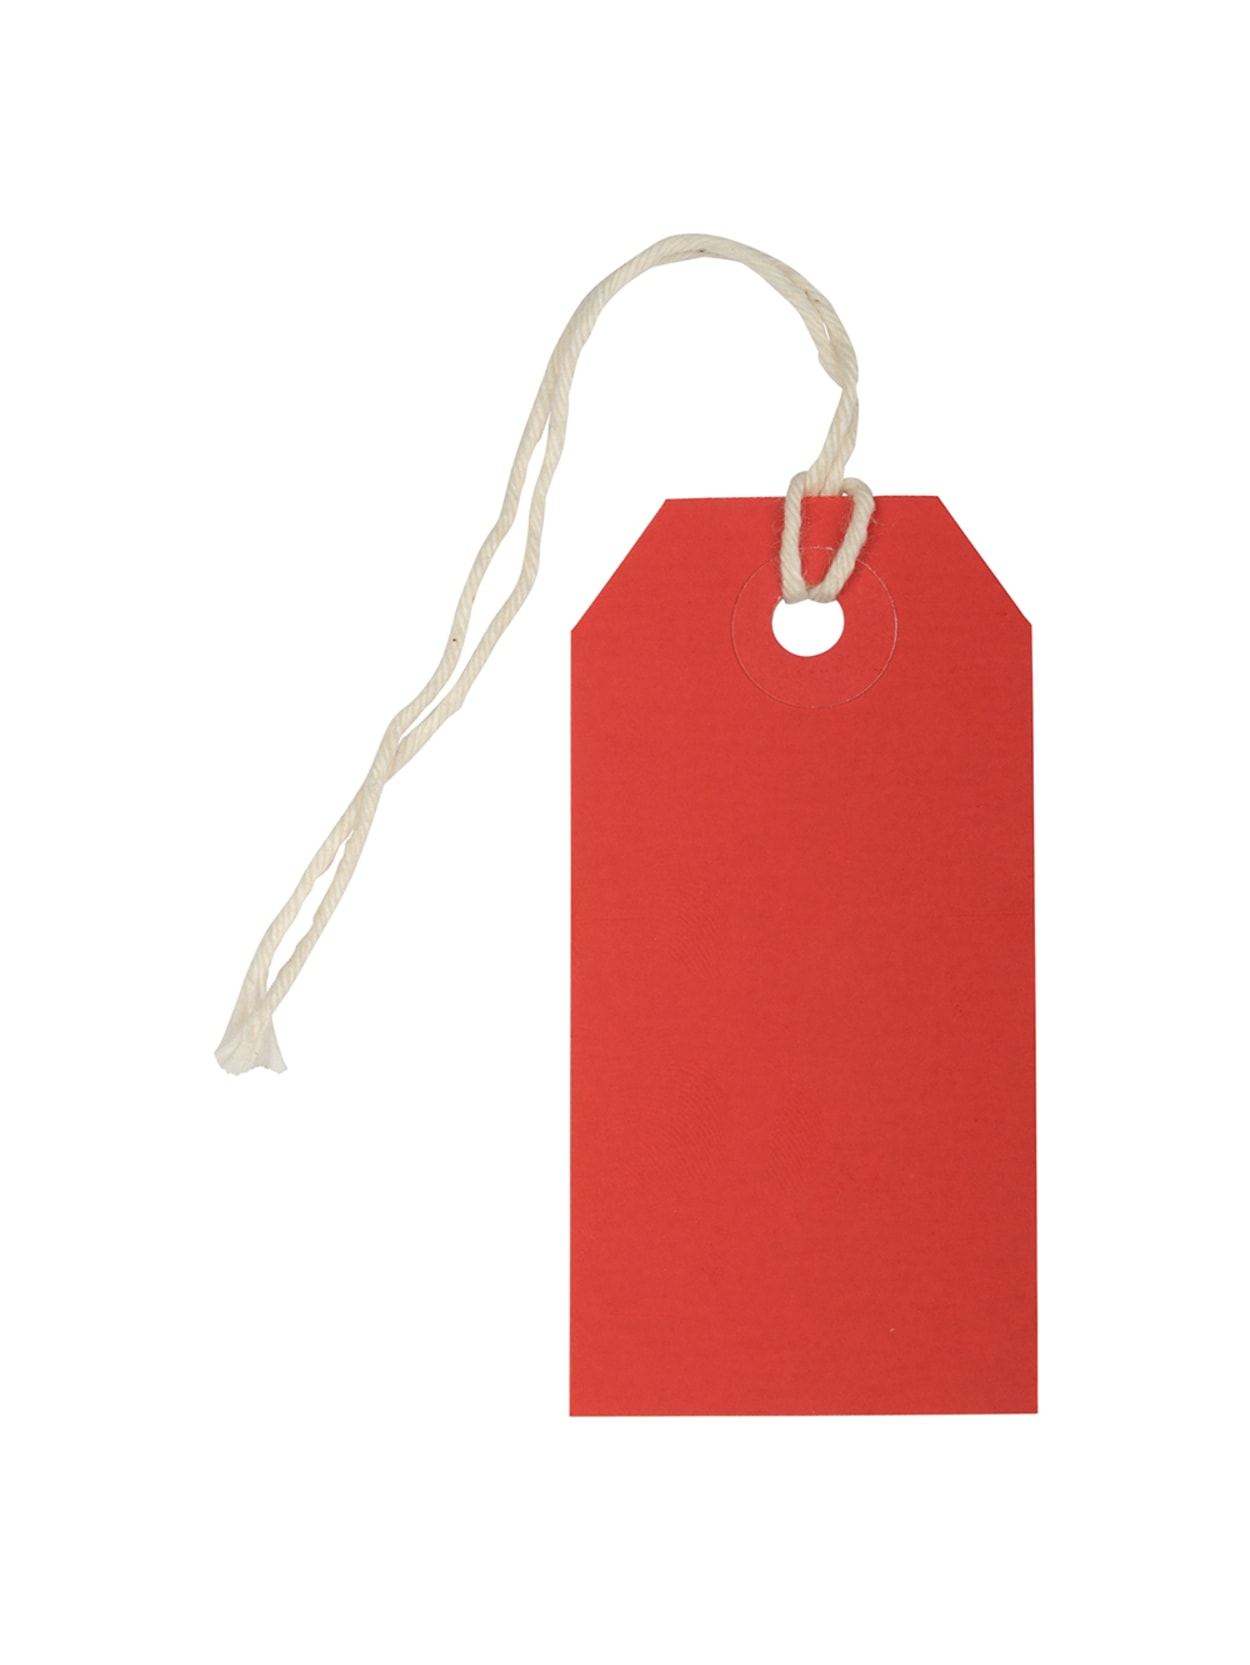 JAM Paper Small Gift Tags Red 10 PK Office Depot